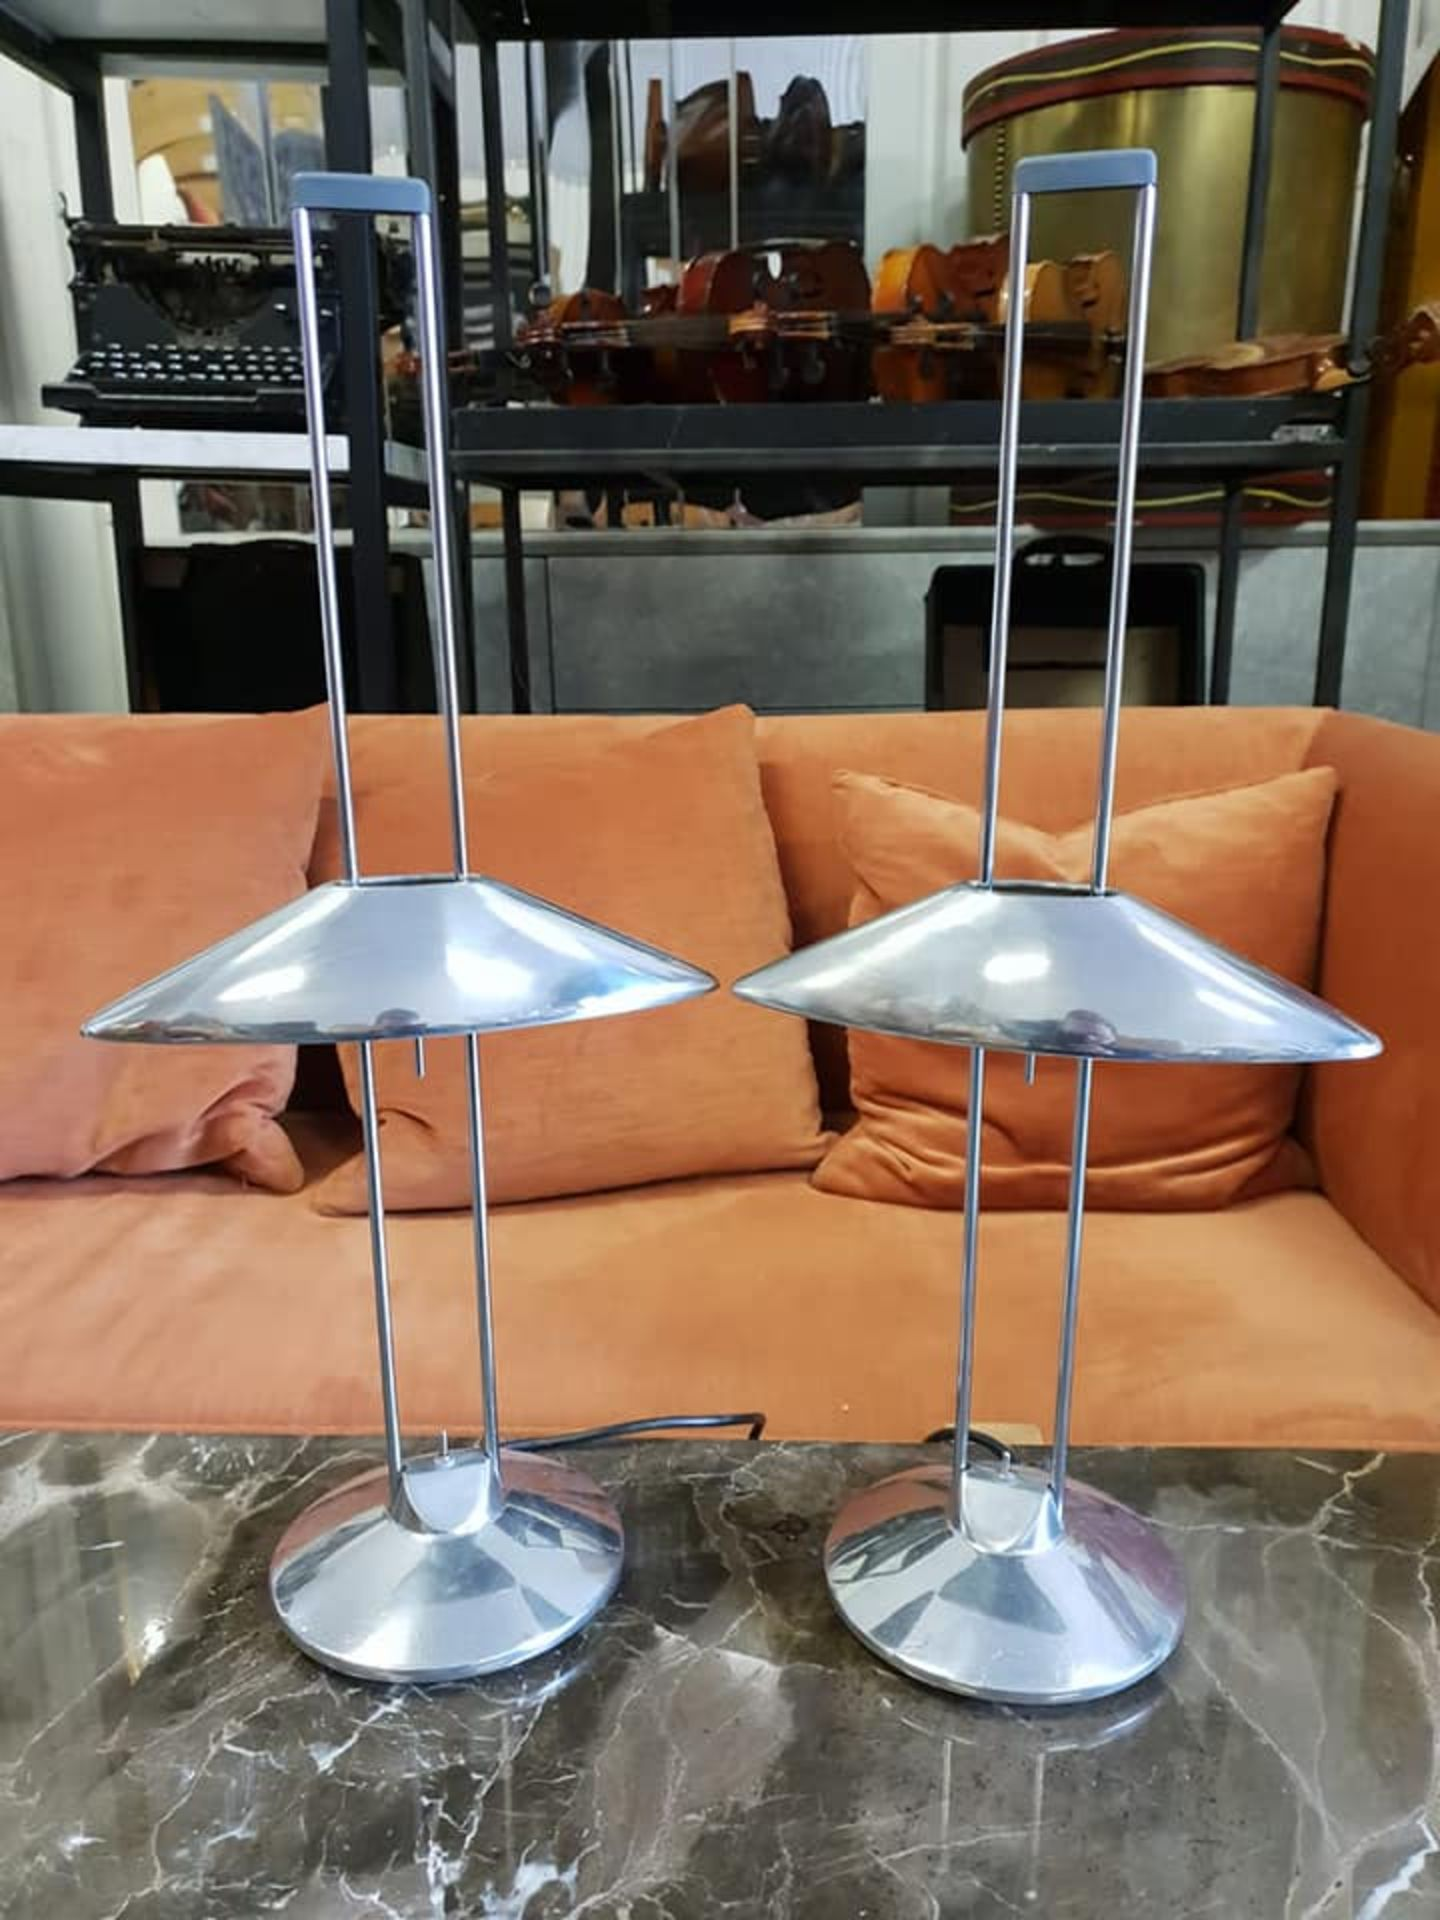 Lot 35 - A Pair Of Regina Mesa Halogen Table Lamps Designed By Jorge Pensi For B-Lux Made Of Chromed Steel